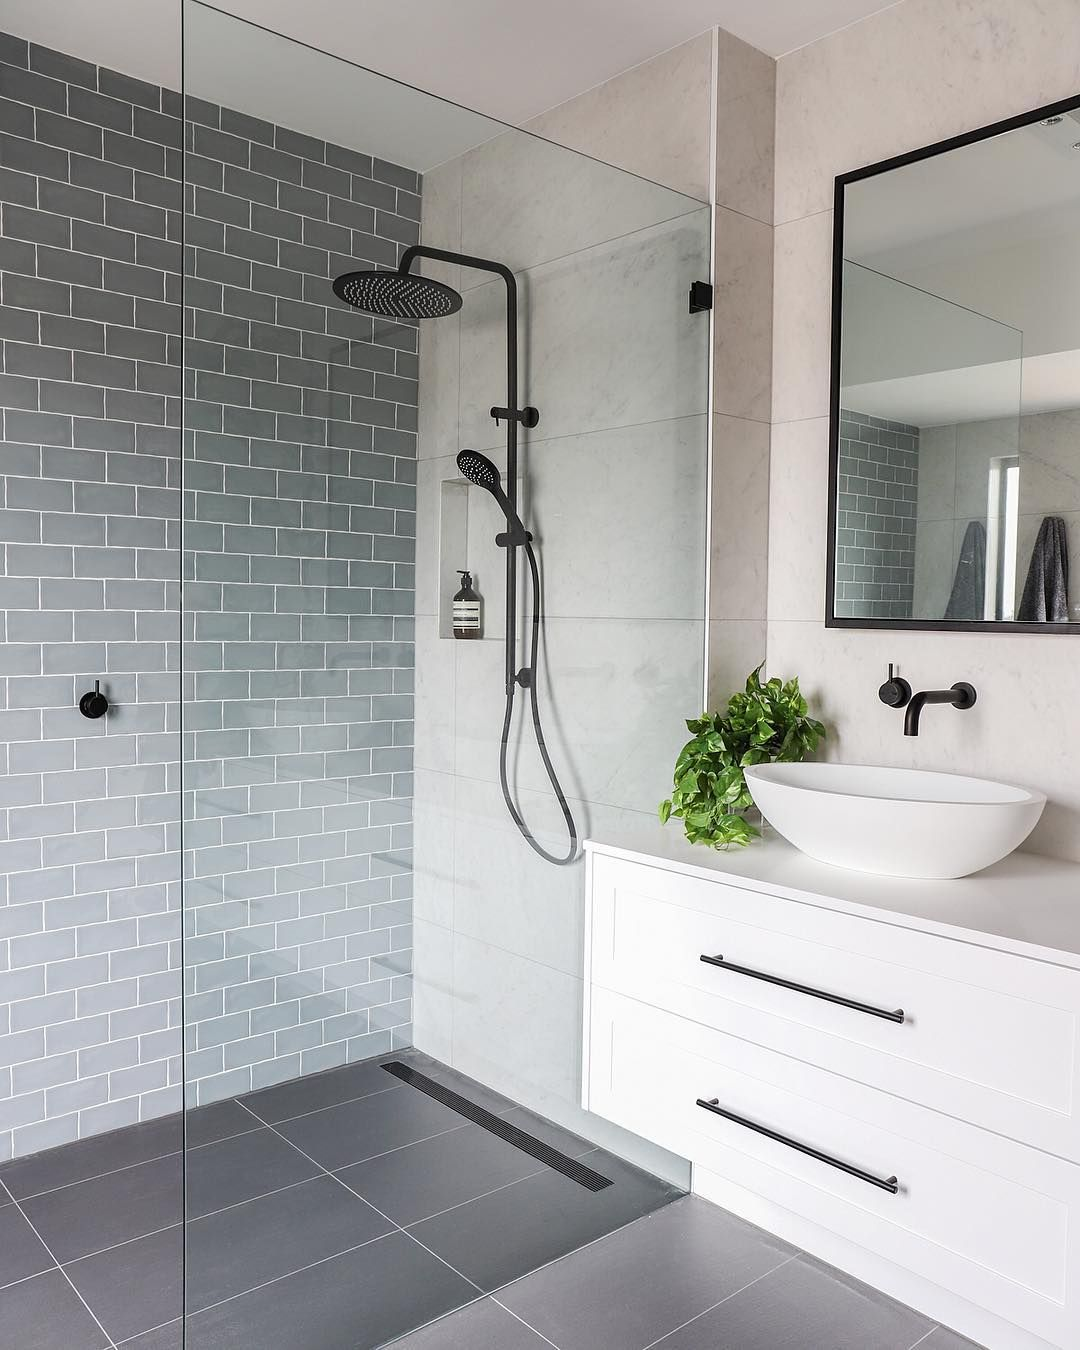 Bathrooms: Showerhead; Shower Niche Shape; Black Hinged Glass; Black